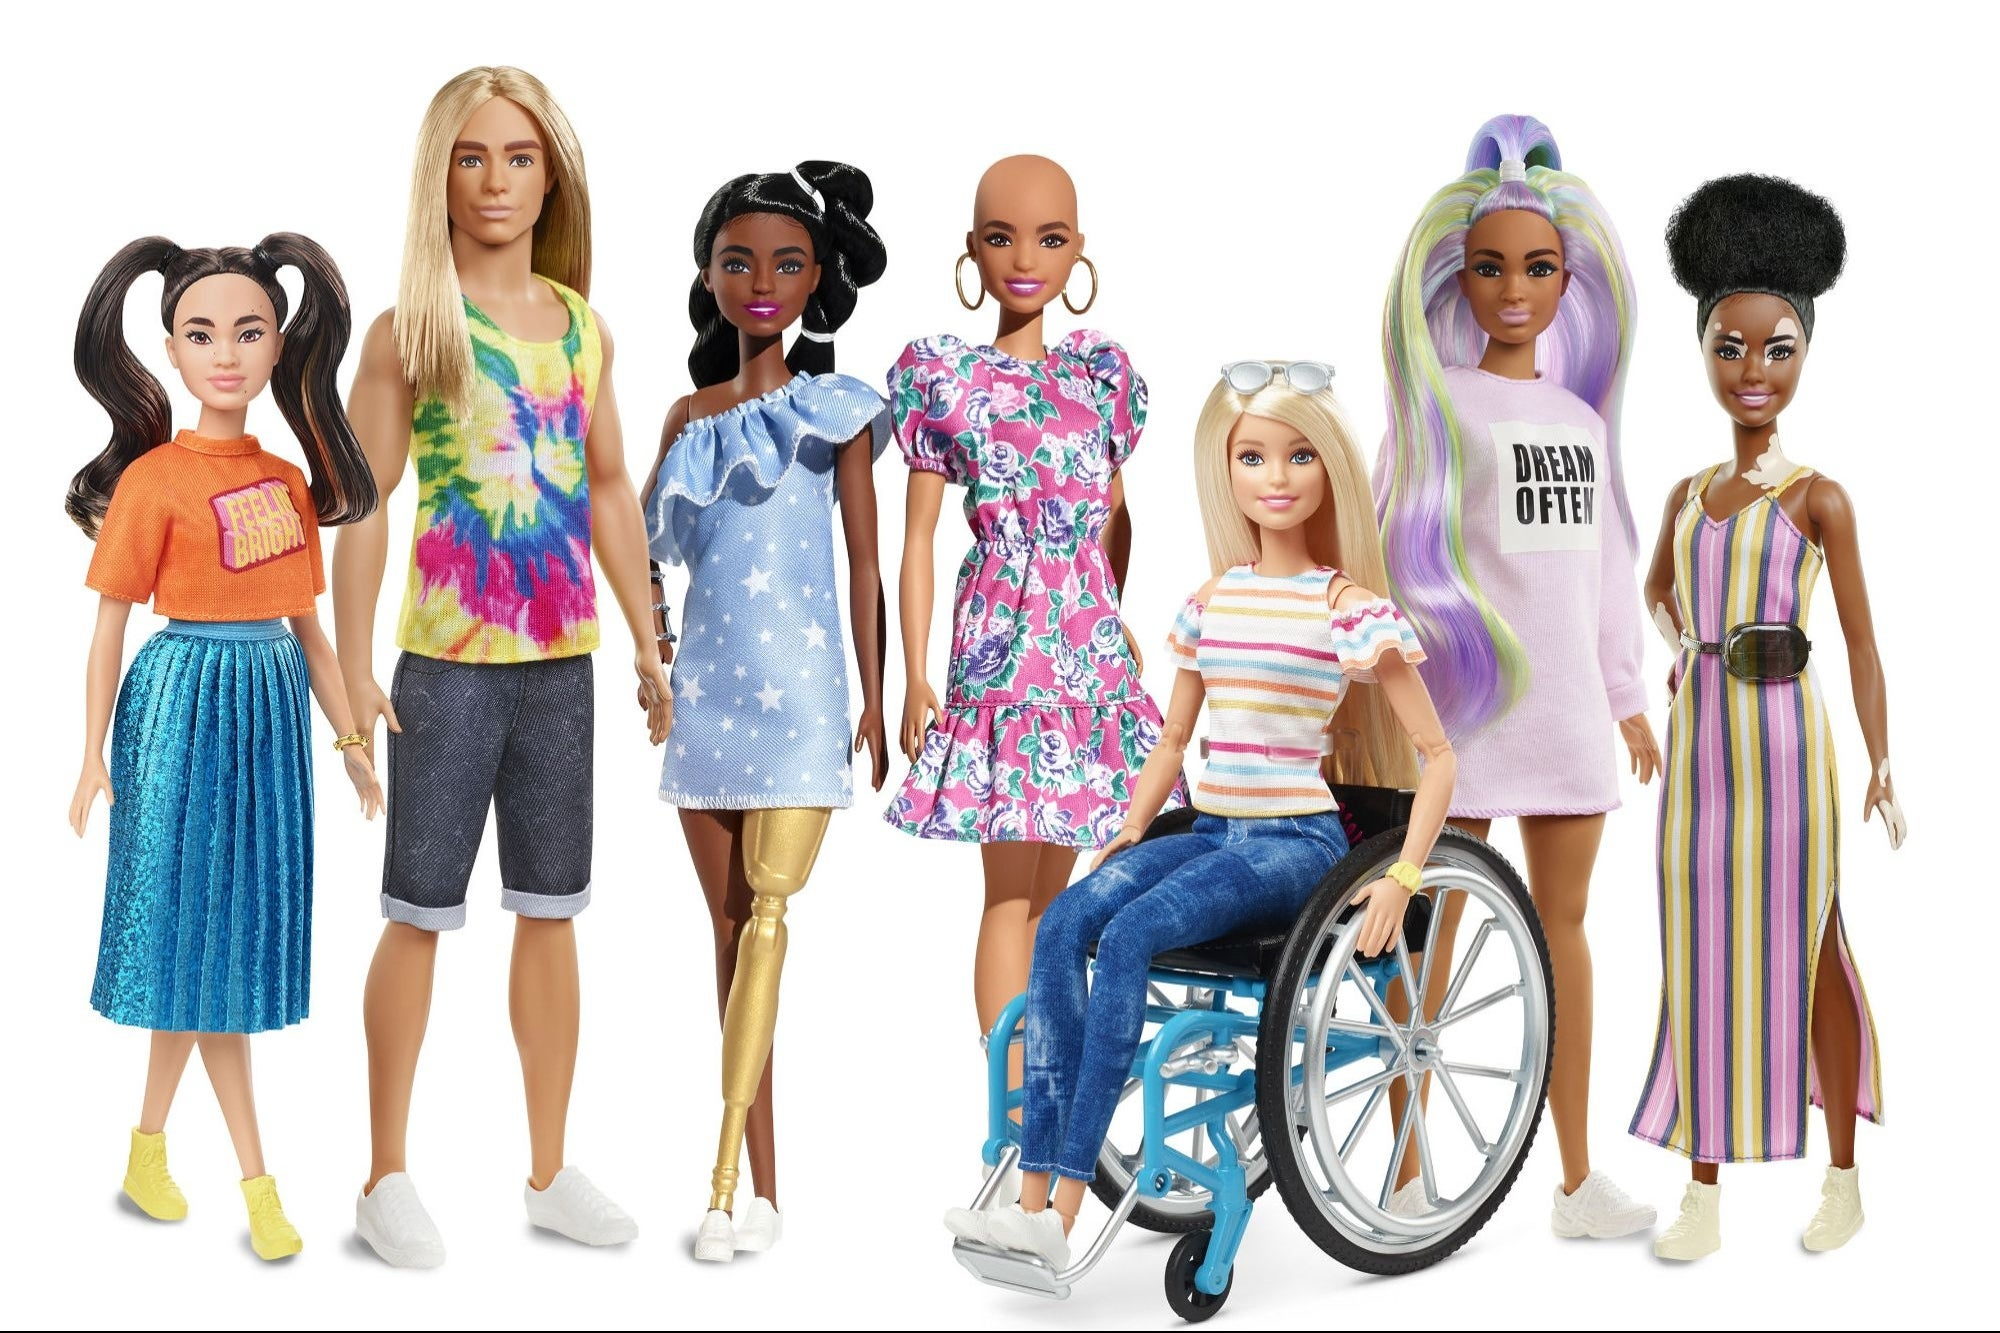 Barbie gets her crown back! 2020 was his best year in sales after betting on inclusion, the 'body positive' and demolishing gender roles